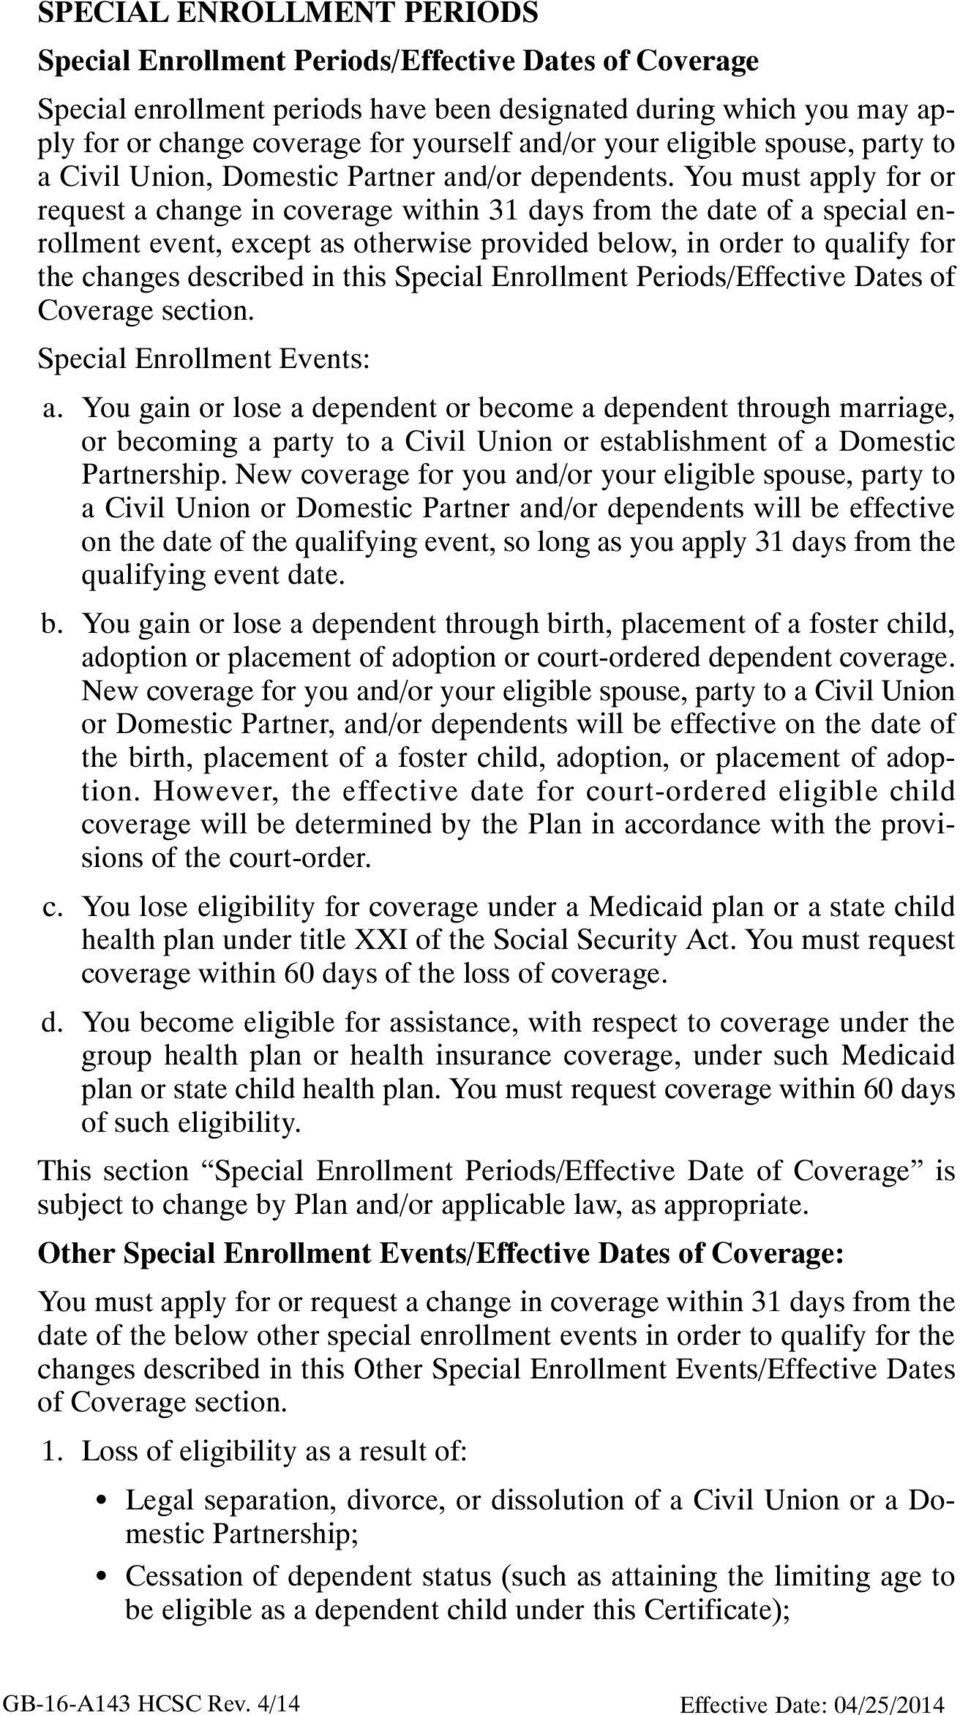 You must apply for or request a change in coverage within 31 days from the date of a special enrollment event, except as otherwise provided below, in order to qualify for the changes described in